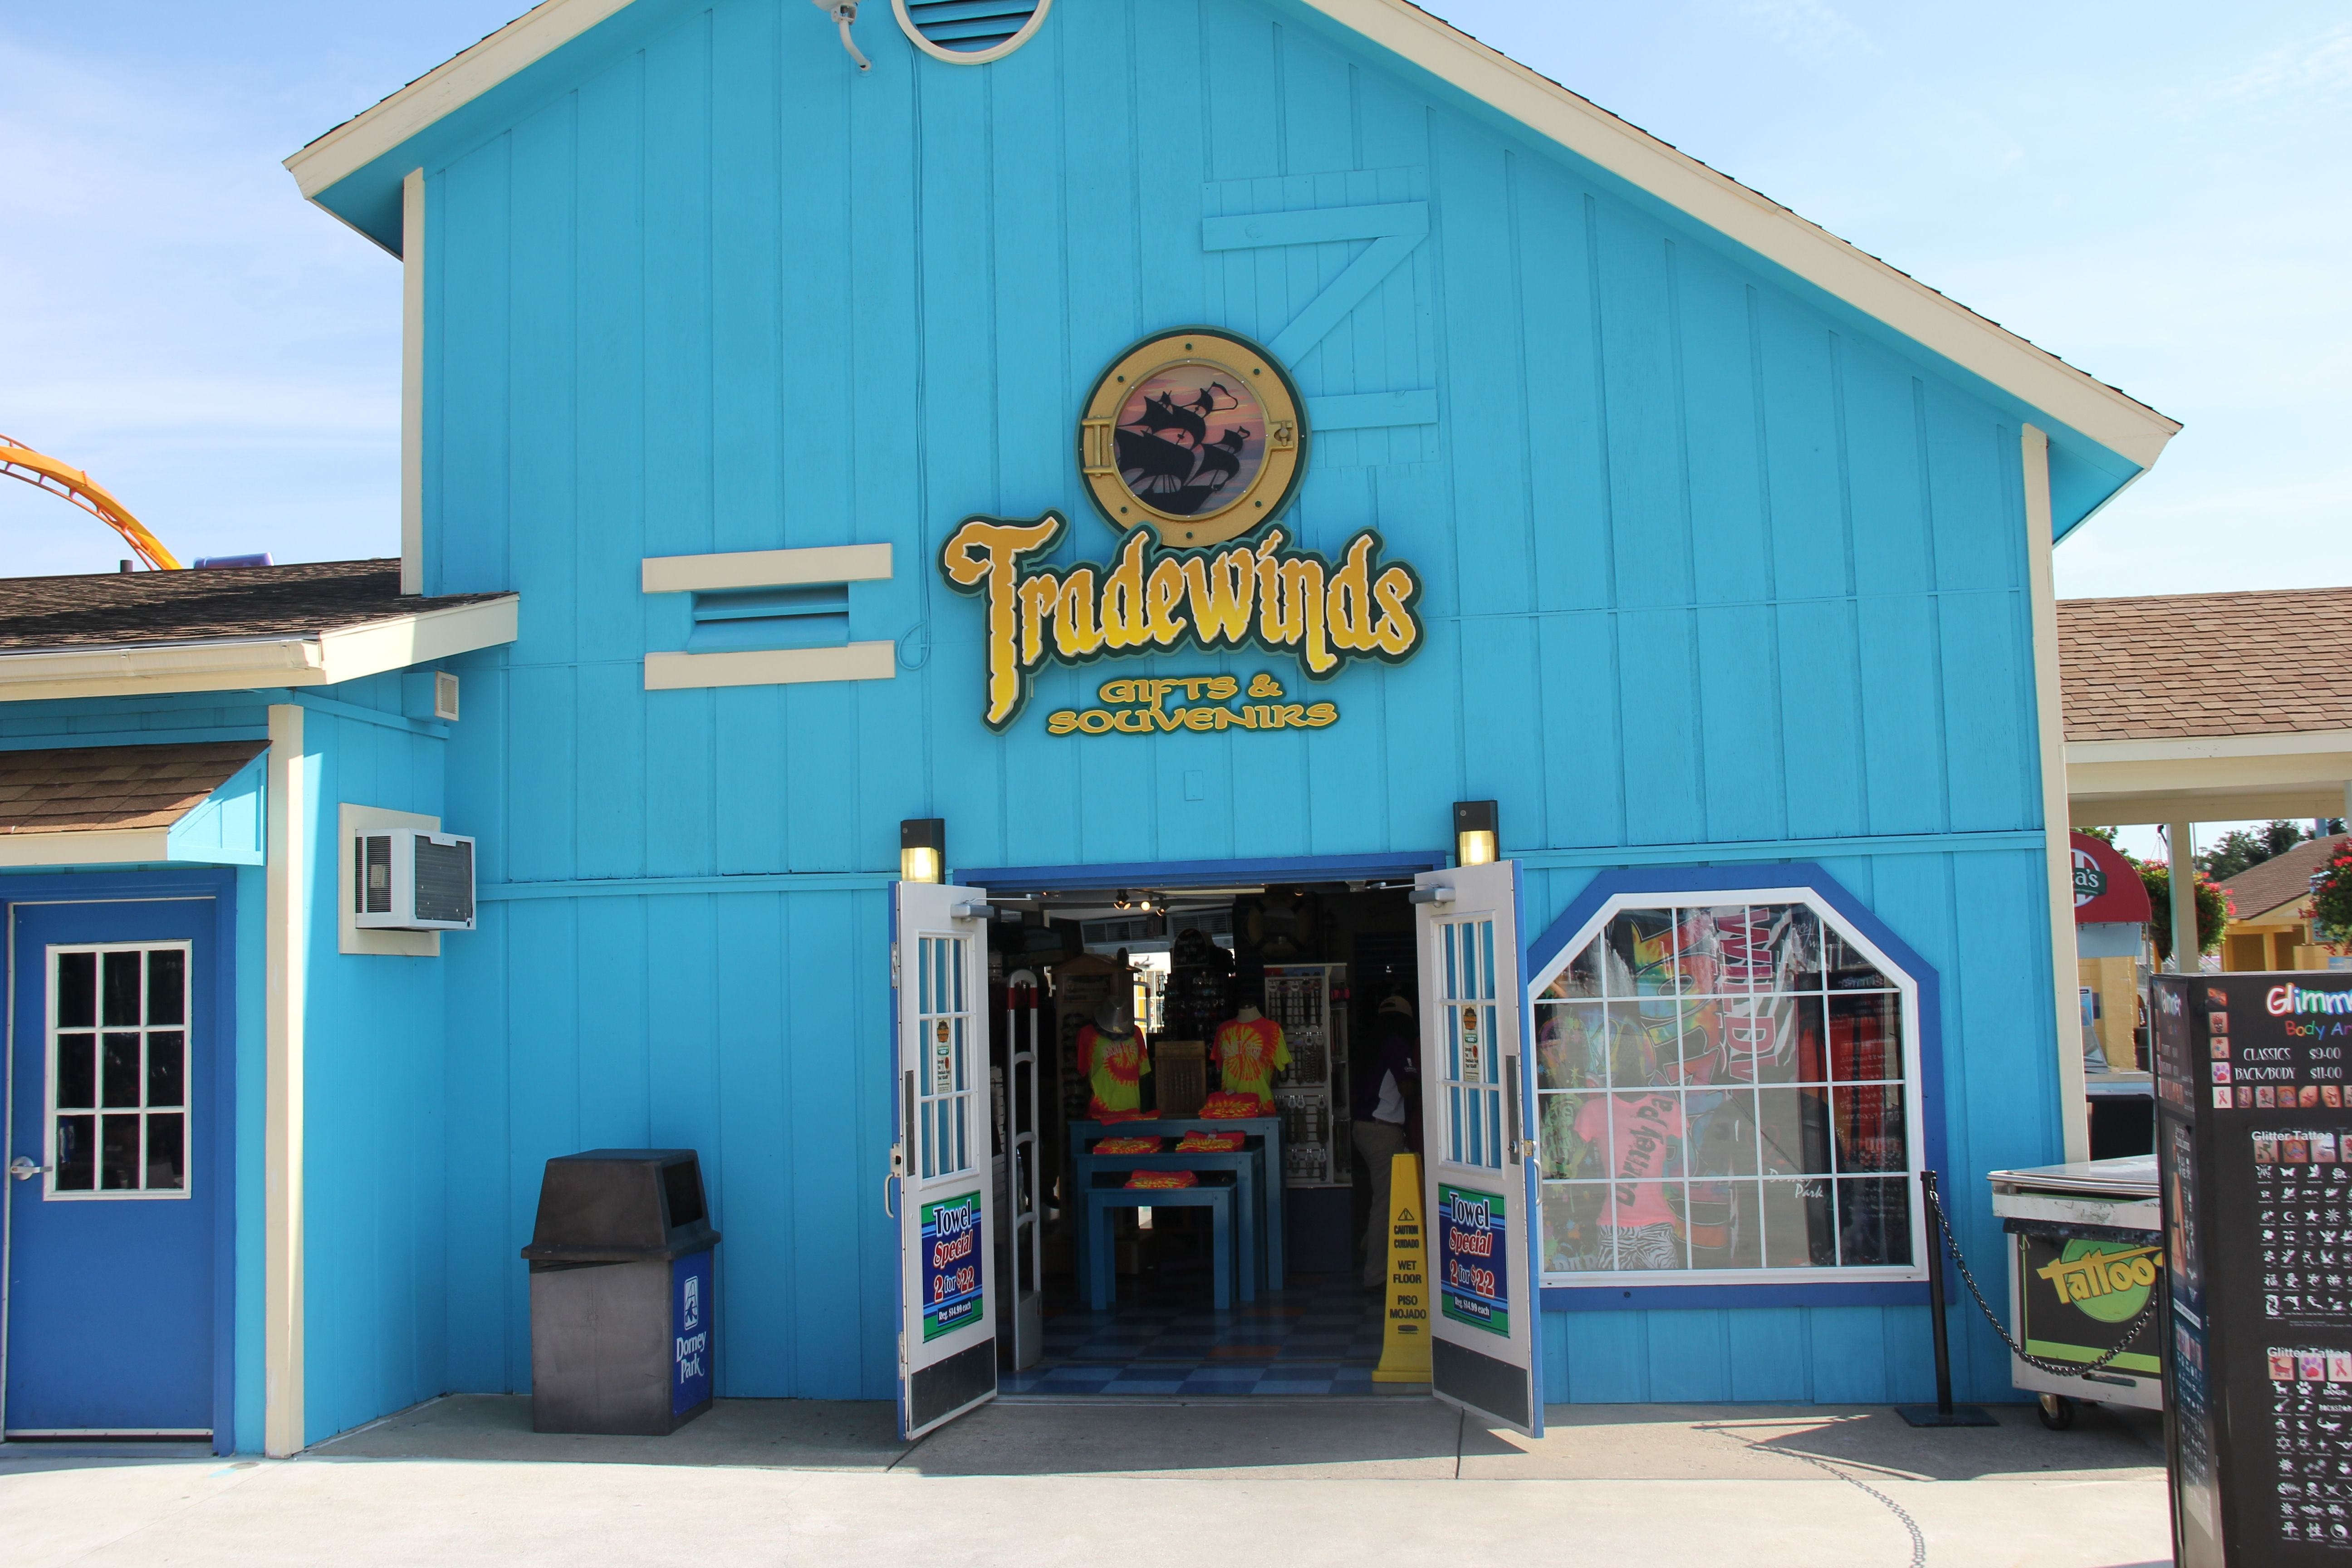 Find high quality Dorney Park Gifts at CafePress. Shop a large selection of custom t-shirts, sweatshirts, mugs and more.